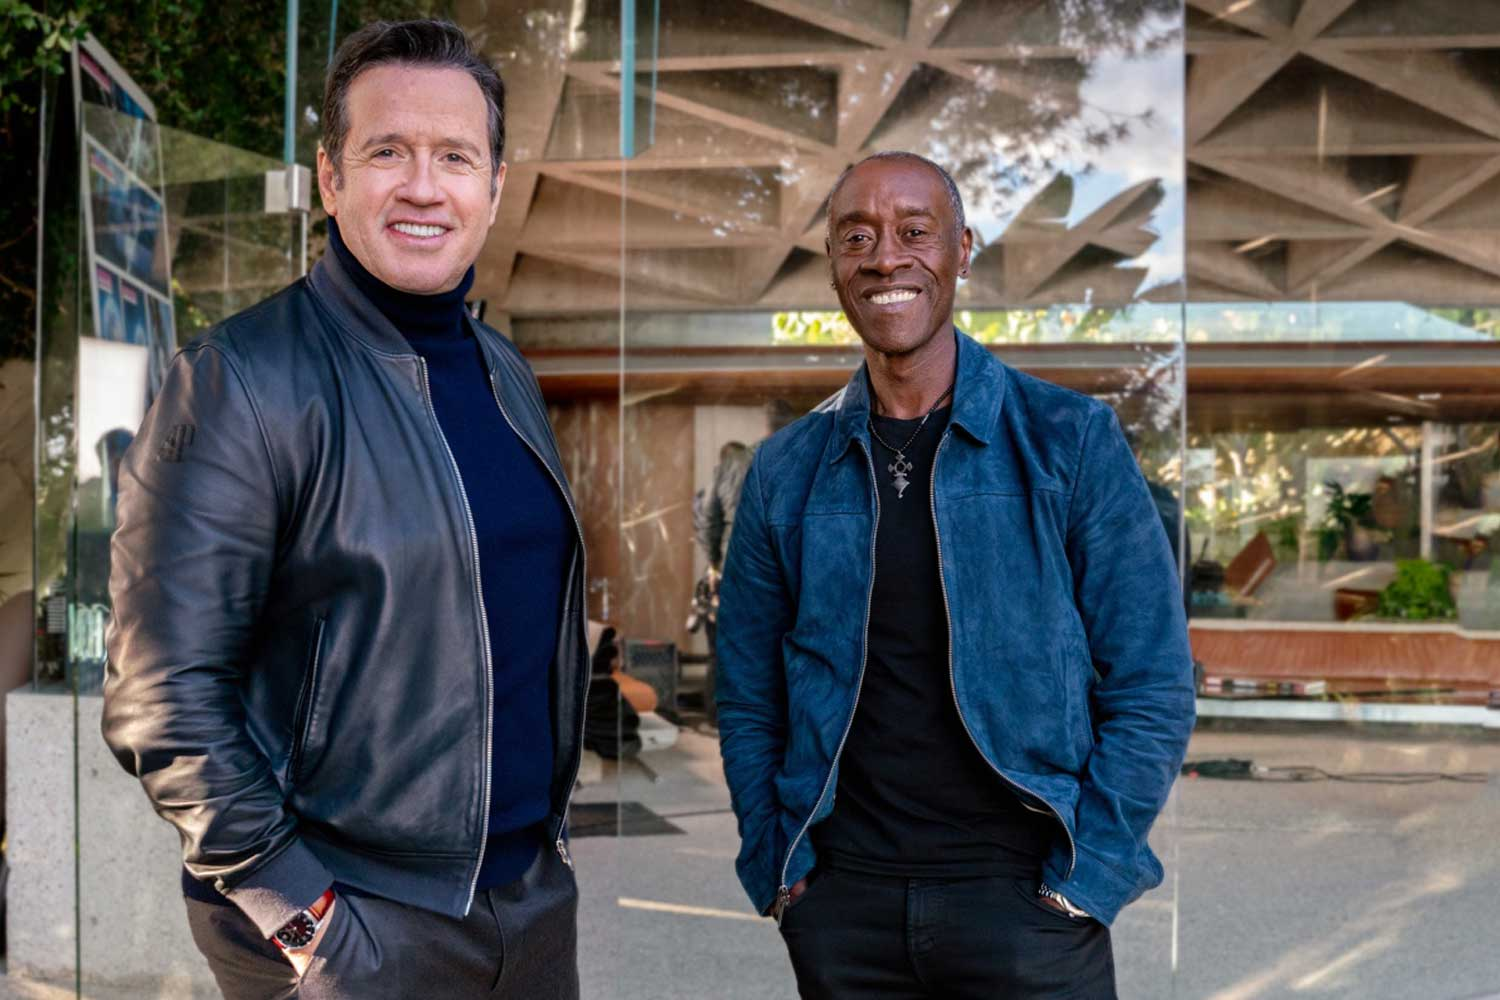 Audemars Piguet's François Bennahmias with actor Don Cheadle, who was instrumental in putting the brand's deal together with Marvel.